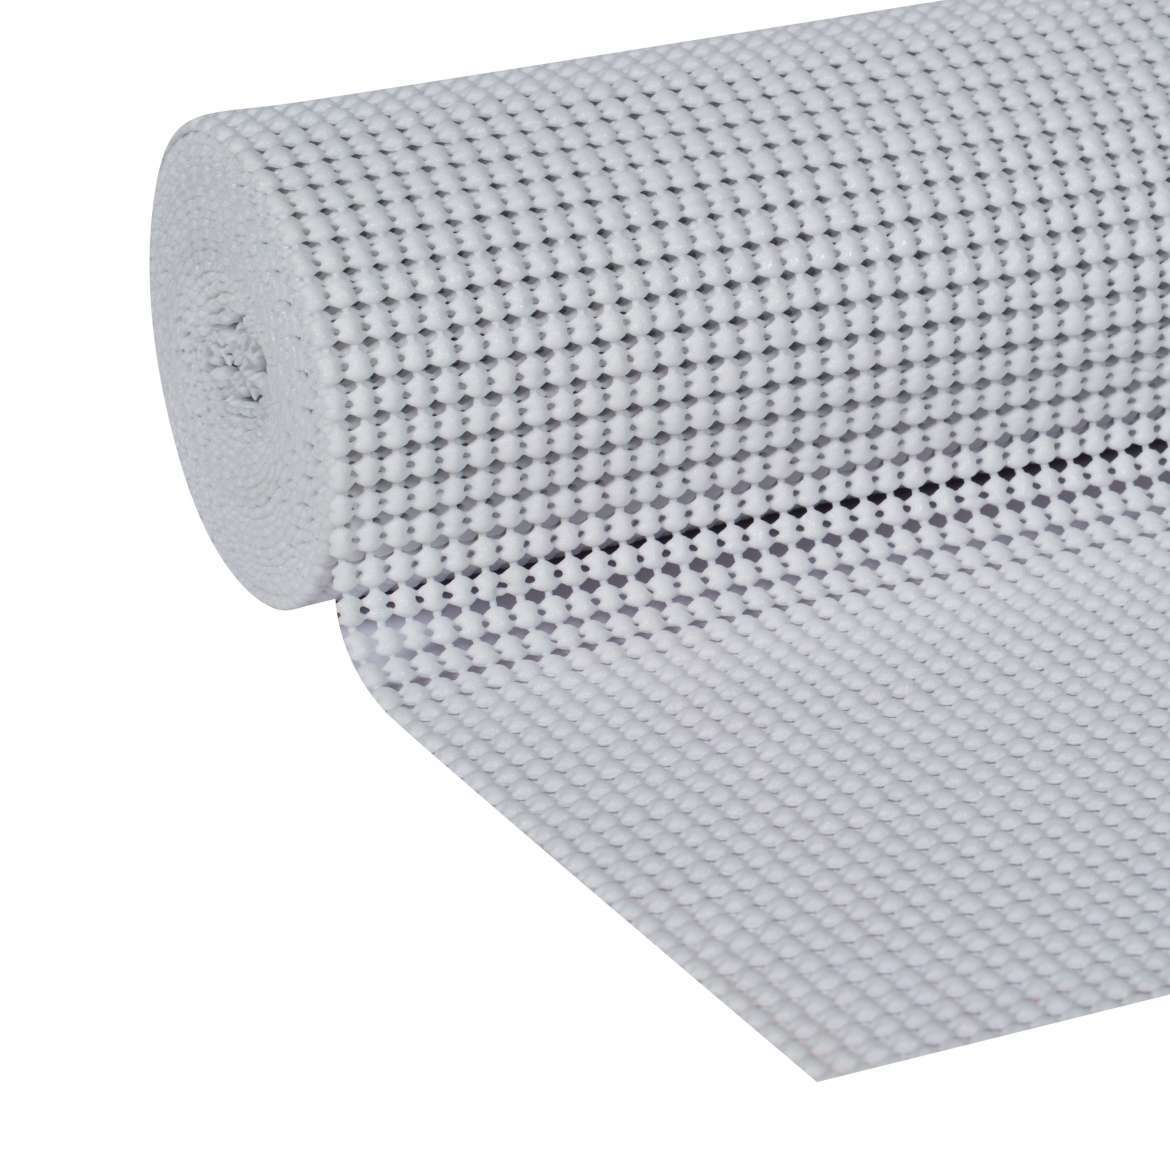 Duck Select Grip with Clorox 12 in. x 10 ft. shelf Liner, White